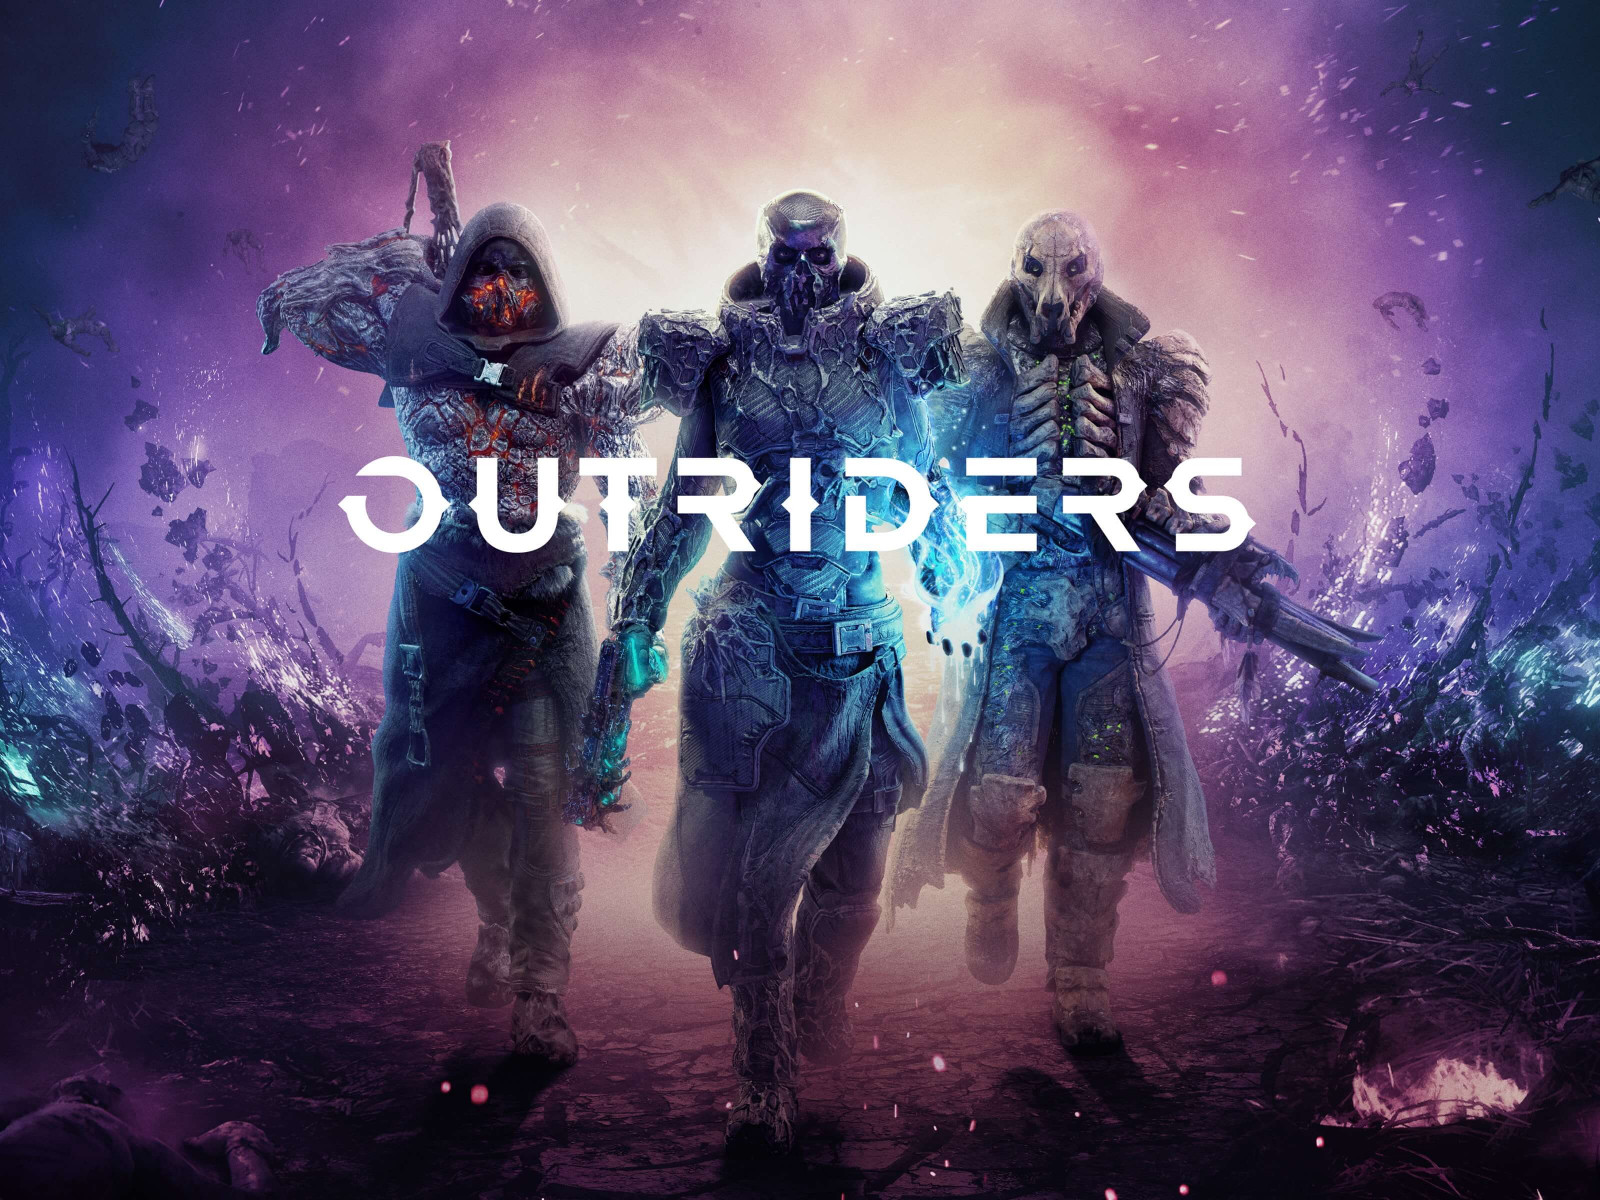 Outriders wallpaper 1600x1200